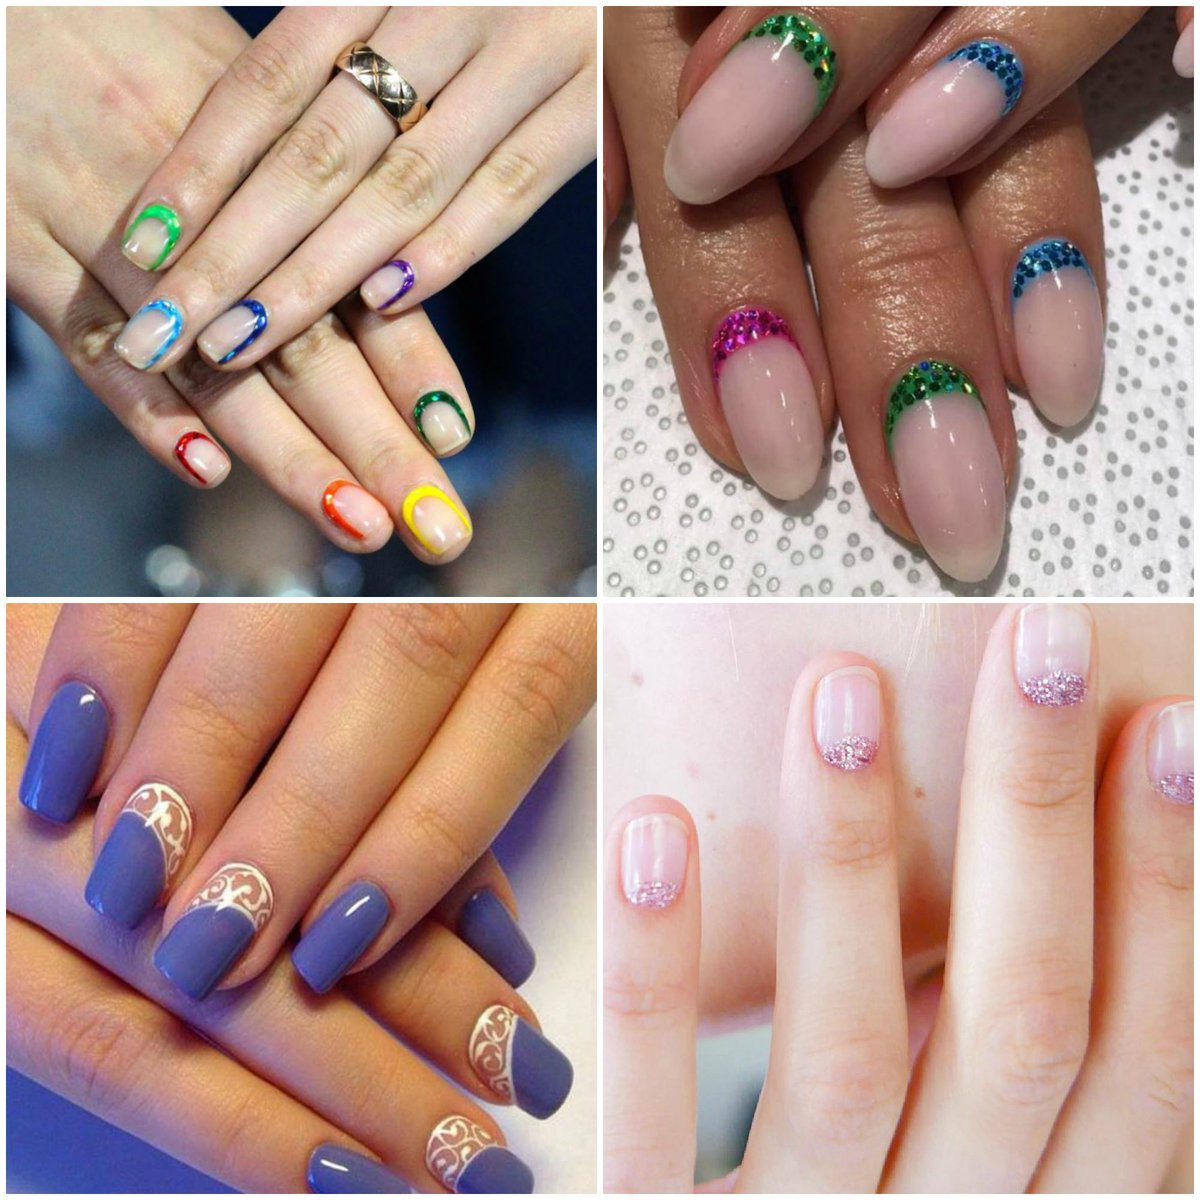 Tip Top Nails On Twitter Cuticle Nail Art Love It Or Leave It We